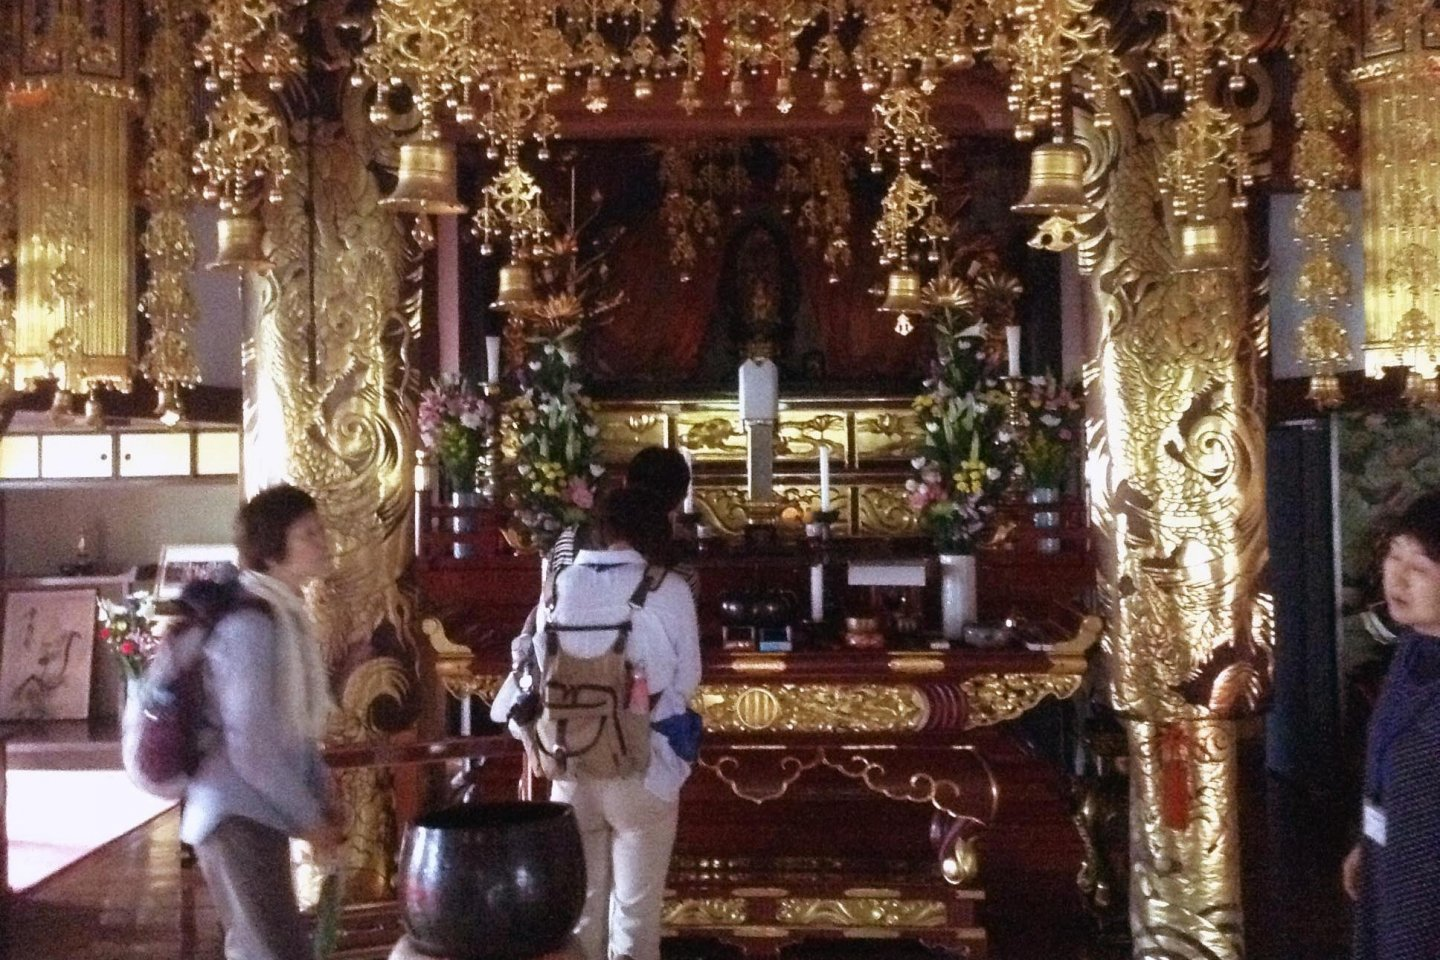 One highlight of the tour was visiting this temple housed in a modern style building, but filled with gorgeous, golden decor